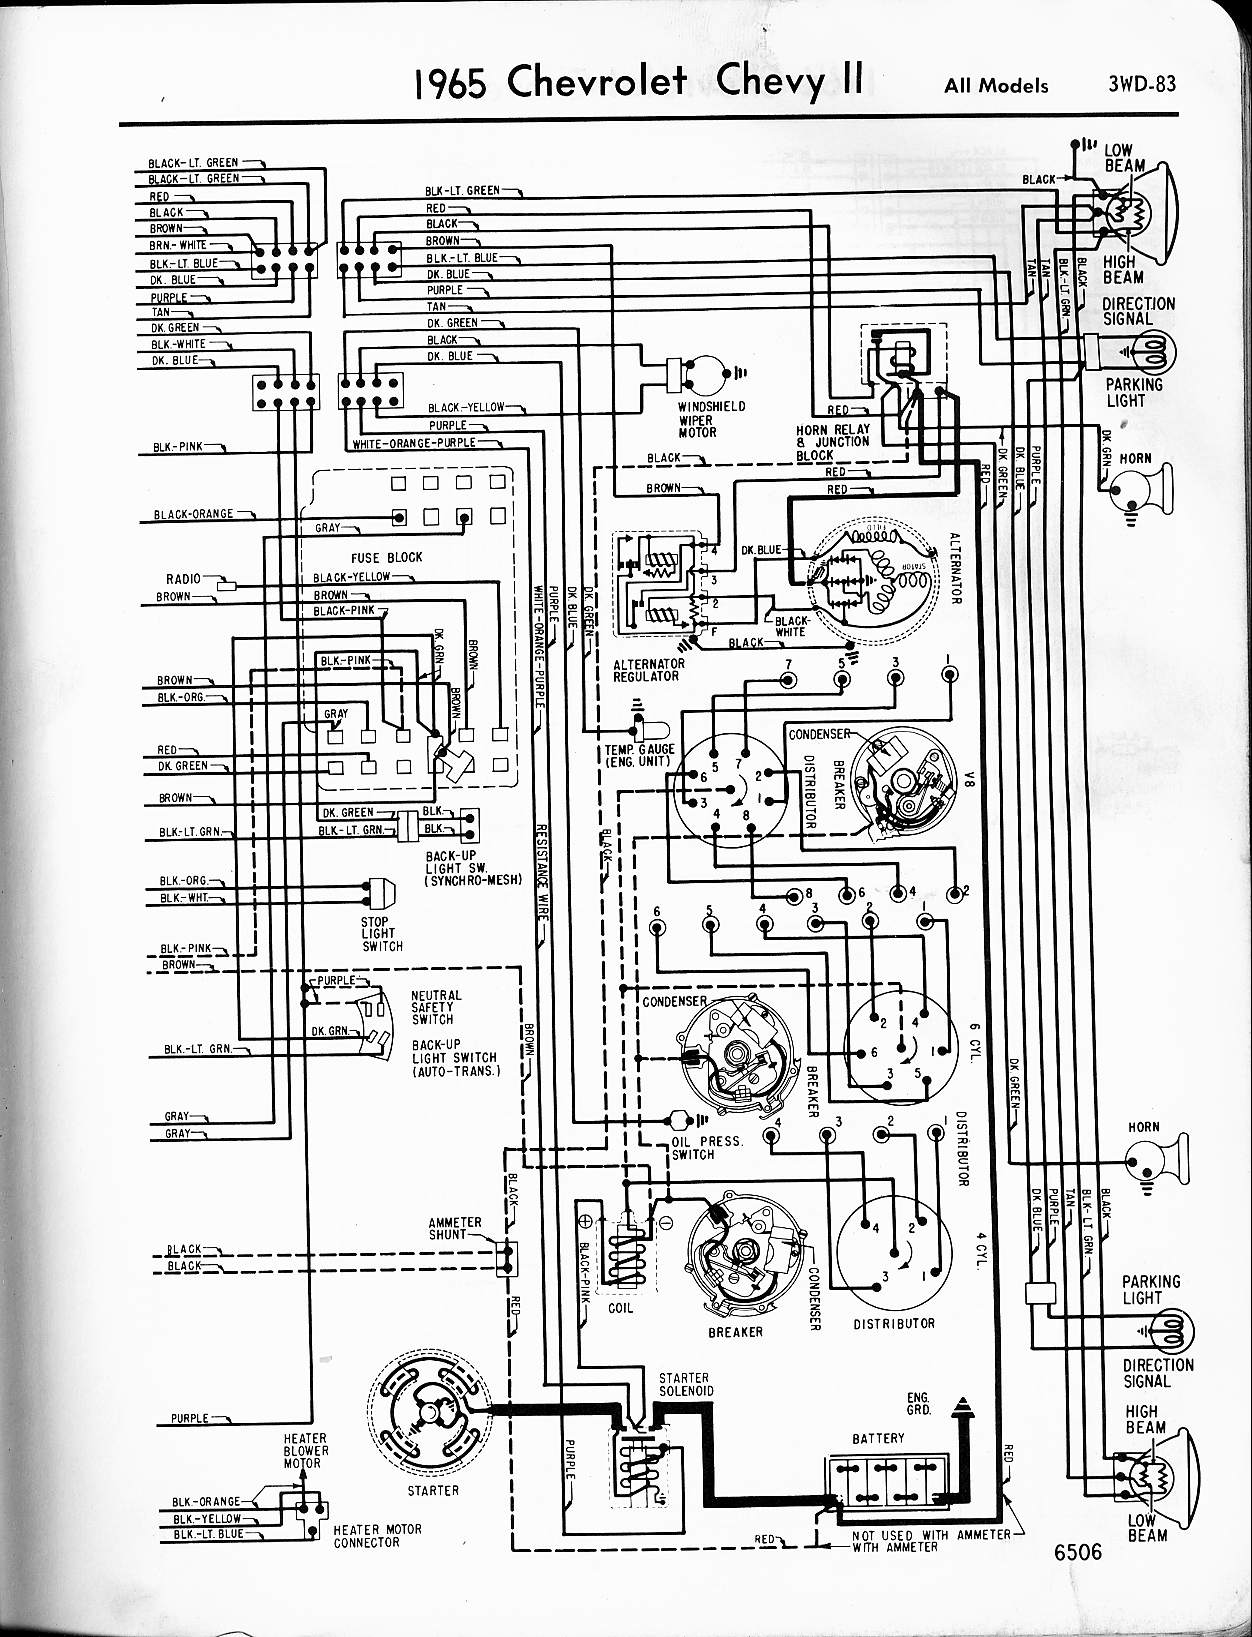 MWireChev65_3WD 083 1969 chevy nova wiring diagram 1969 chevelle engine wiring diagram 1973 chevy nova wiring harness at mifinder.co